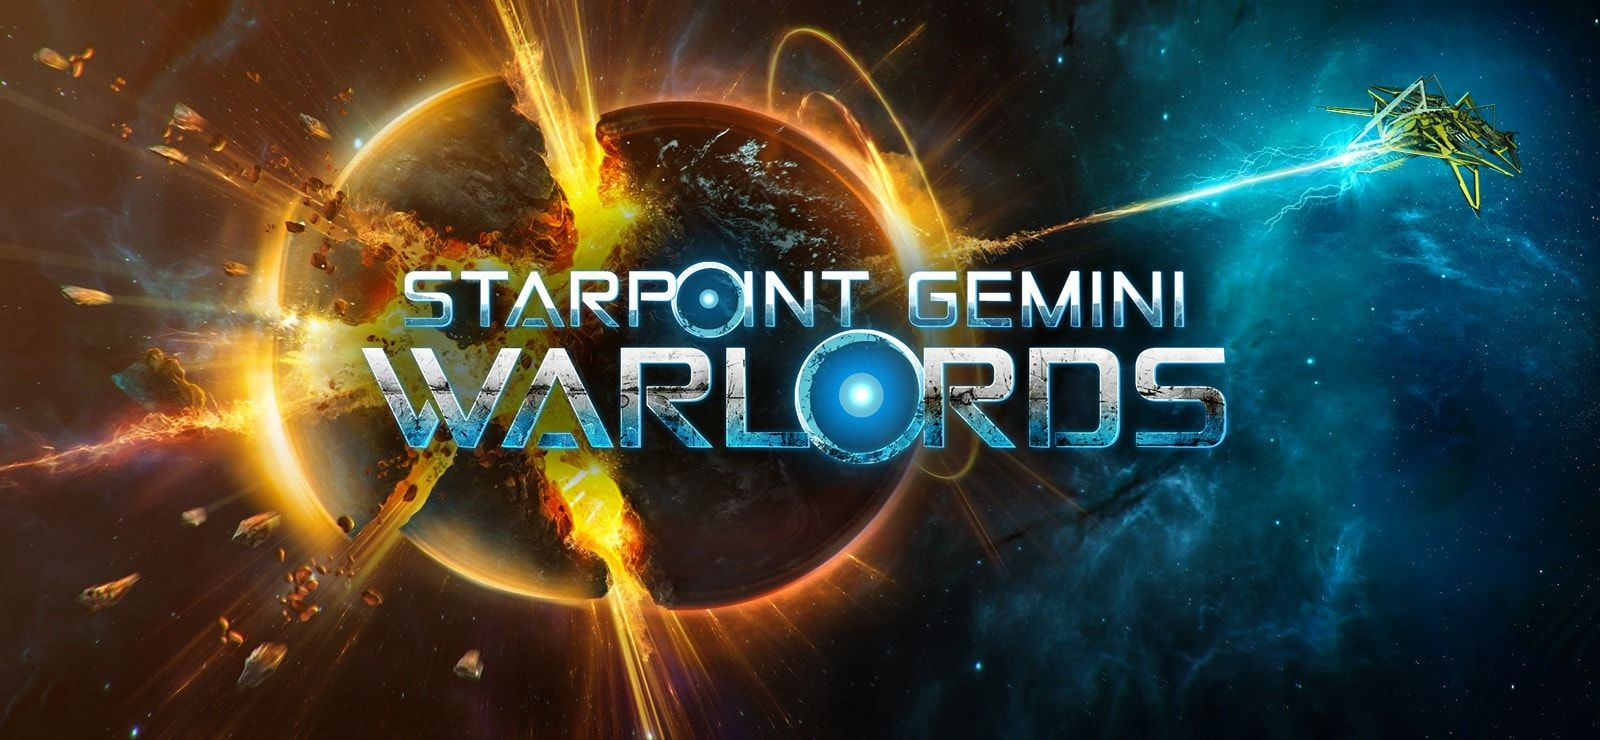 Download Game PC Gratis Starpoint Gemini Warlods Repack